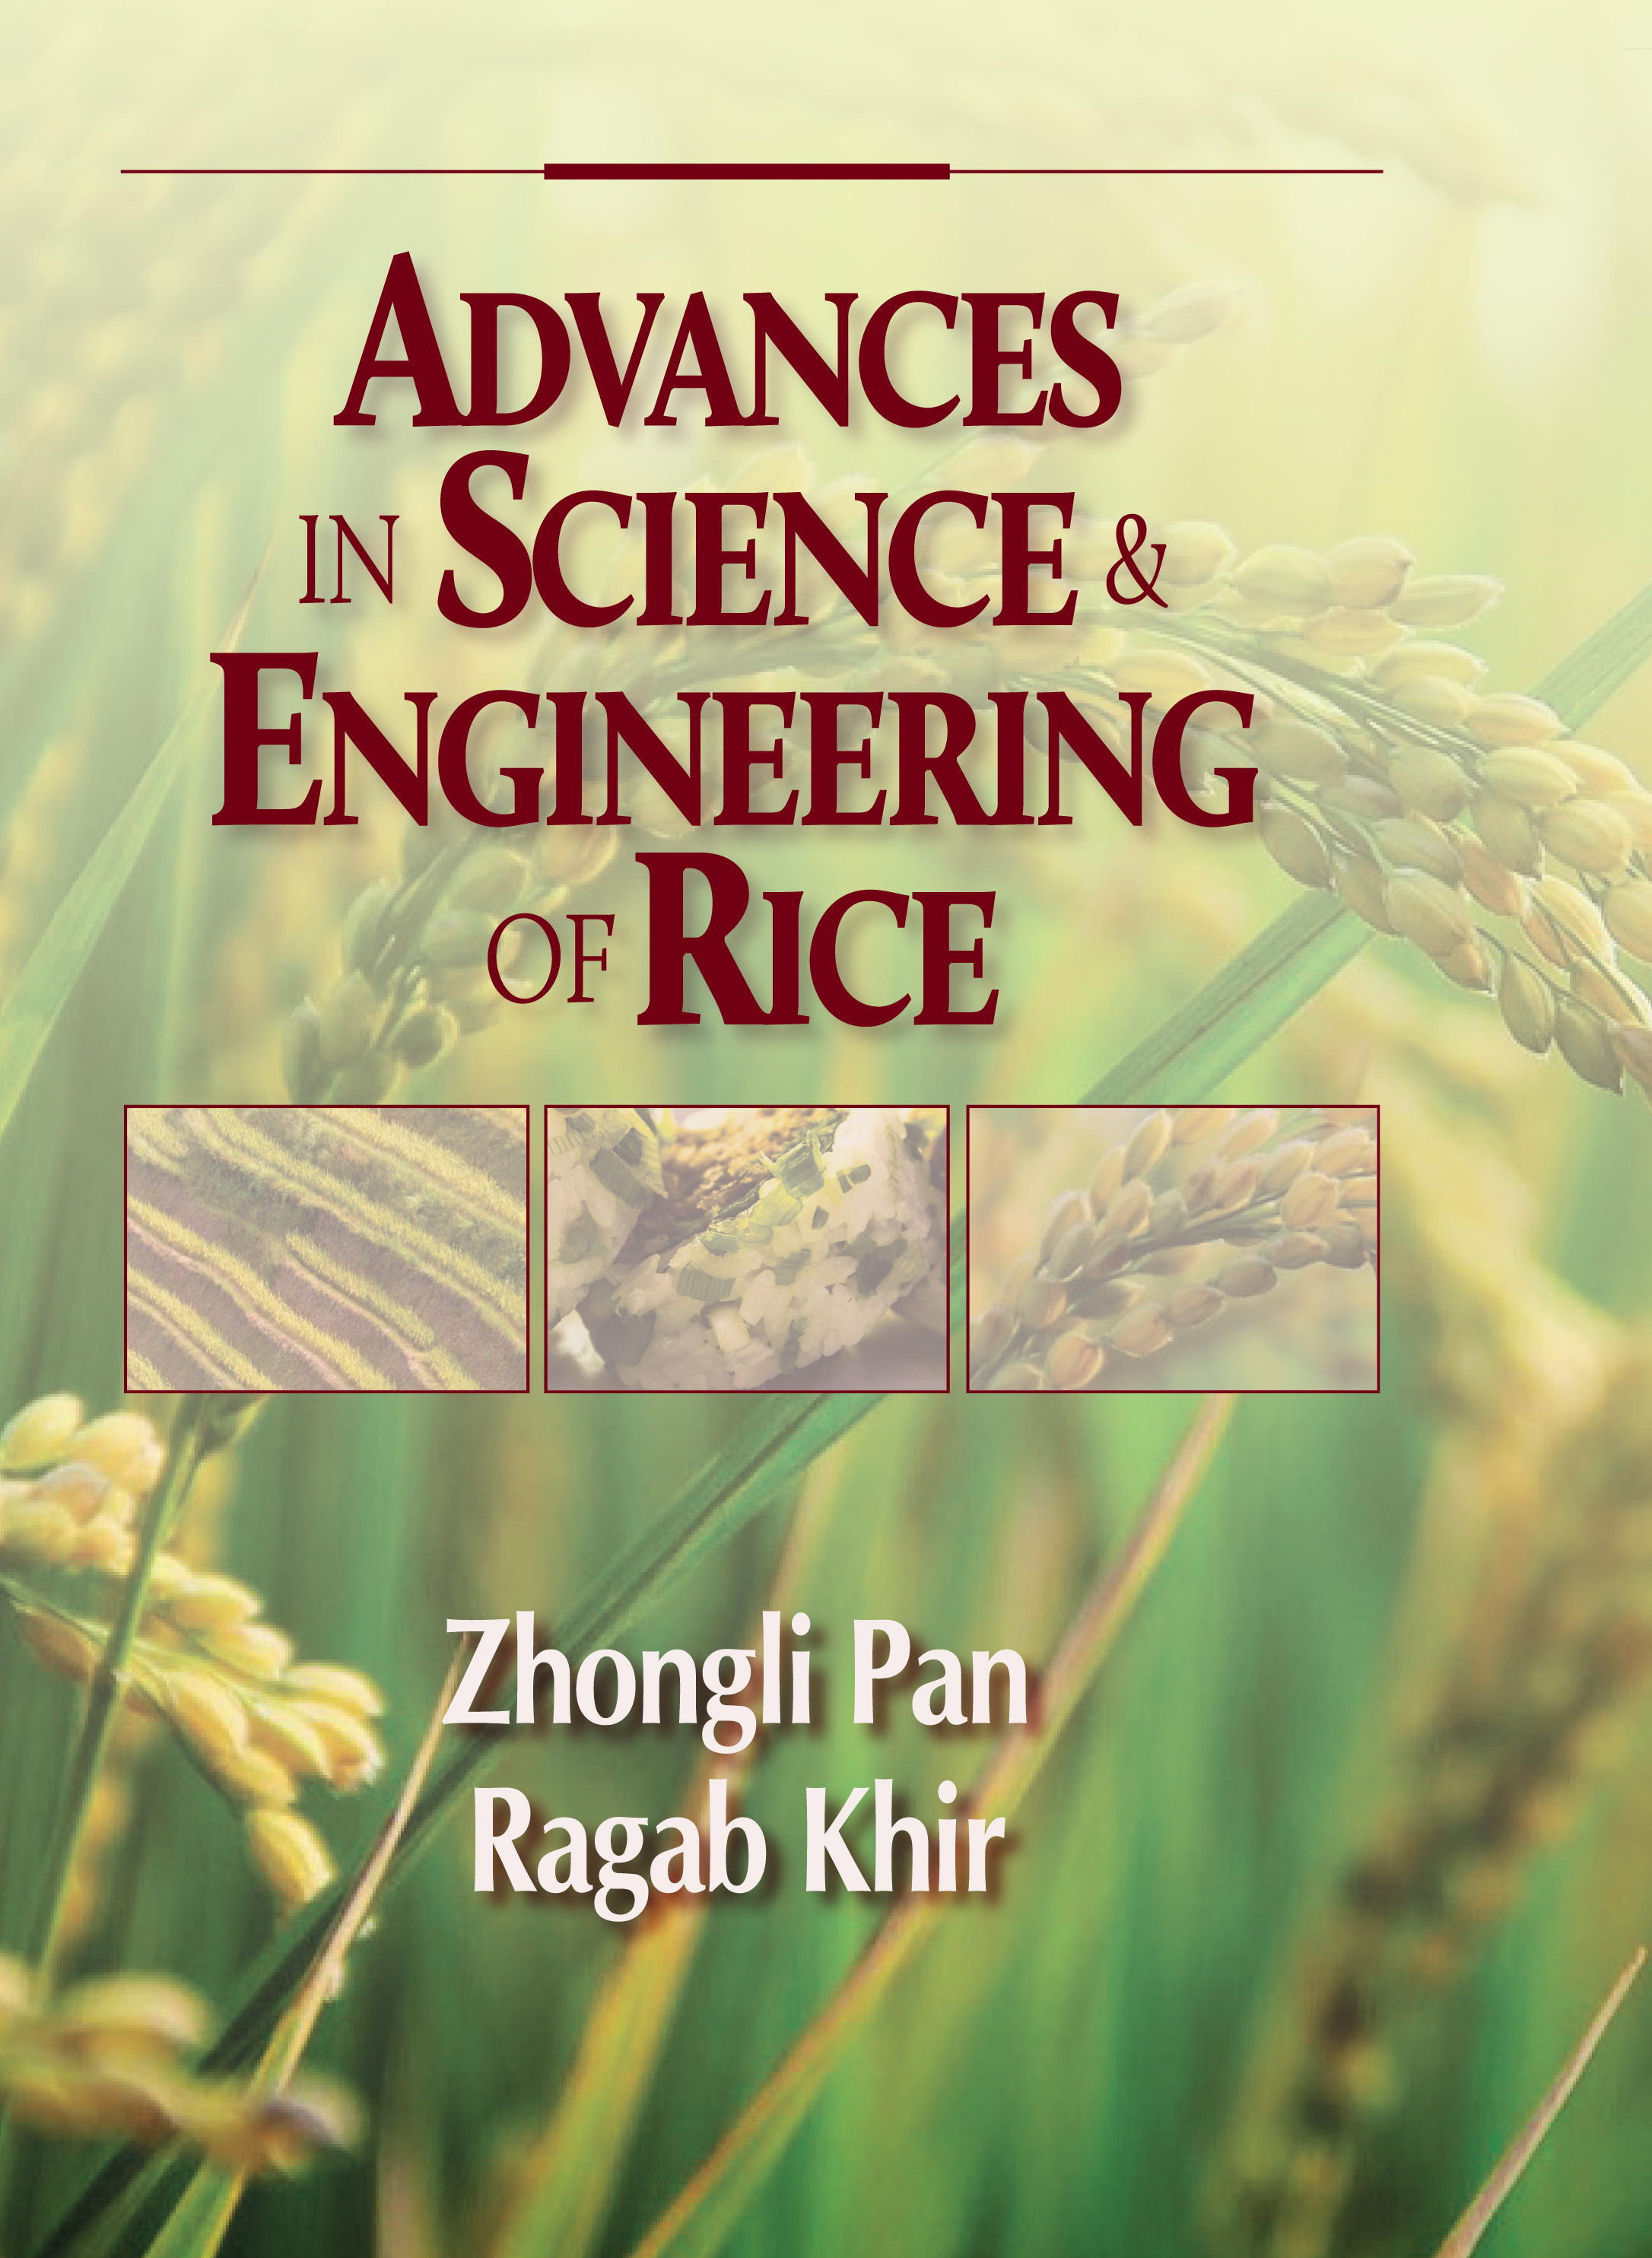 Advances in Science & Engineering of Rice | DEStech Publishing Inc